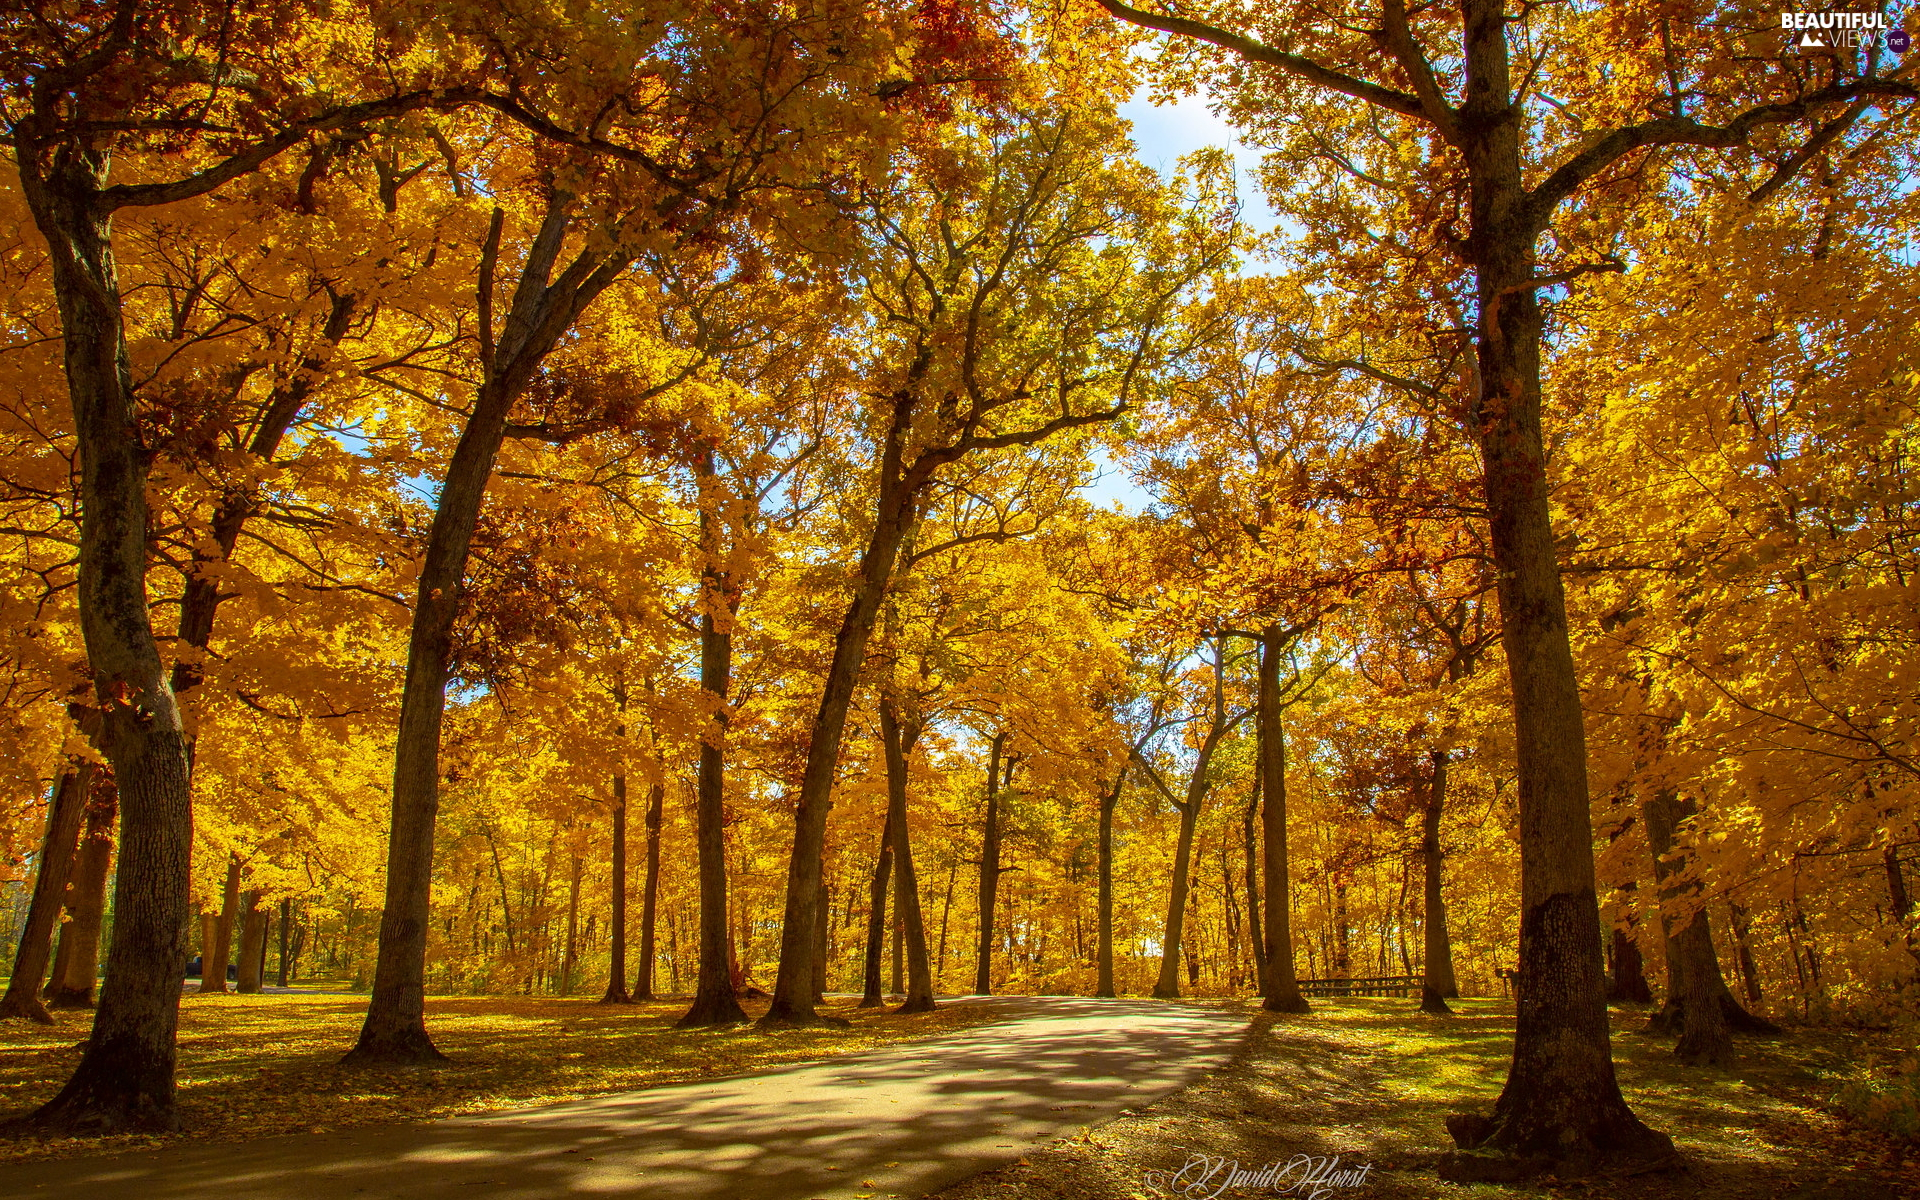 viewes, Yellowed, sunny, trees, autumn, Park, day